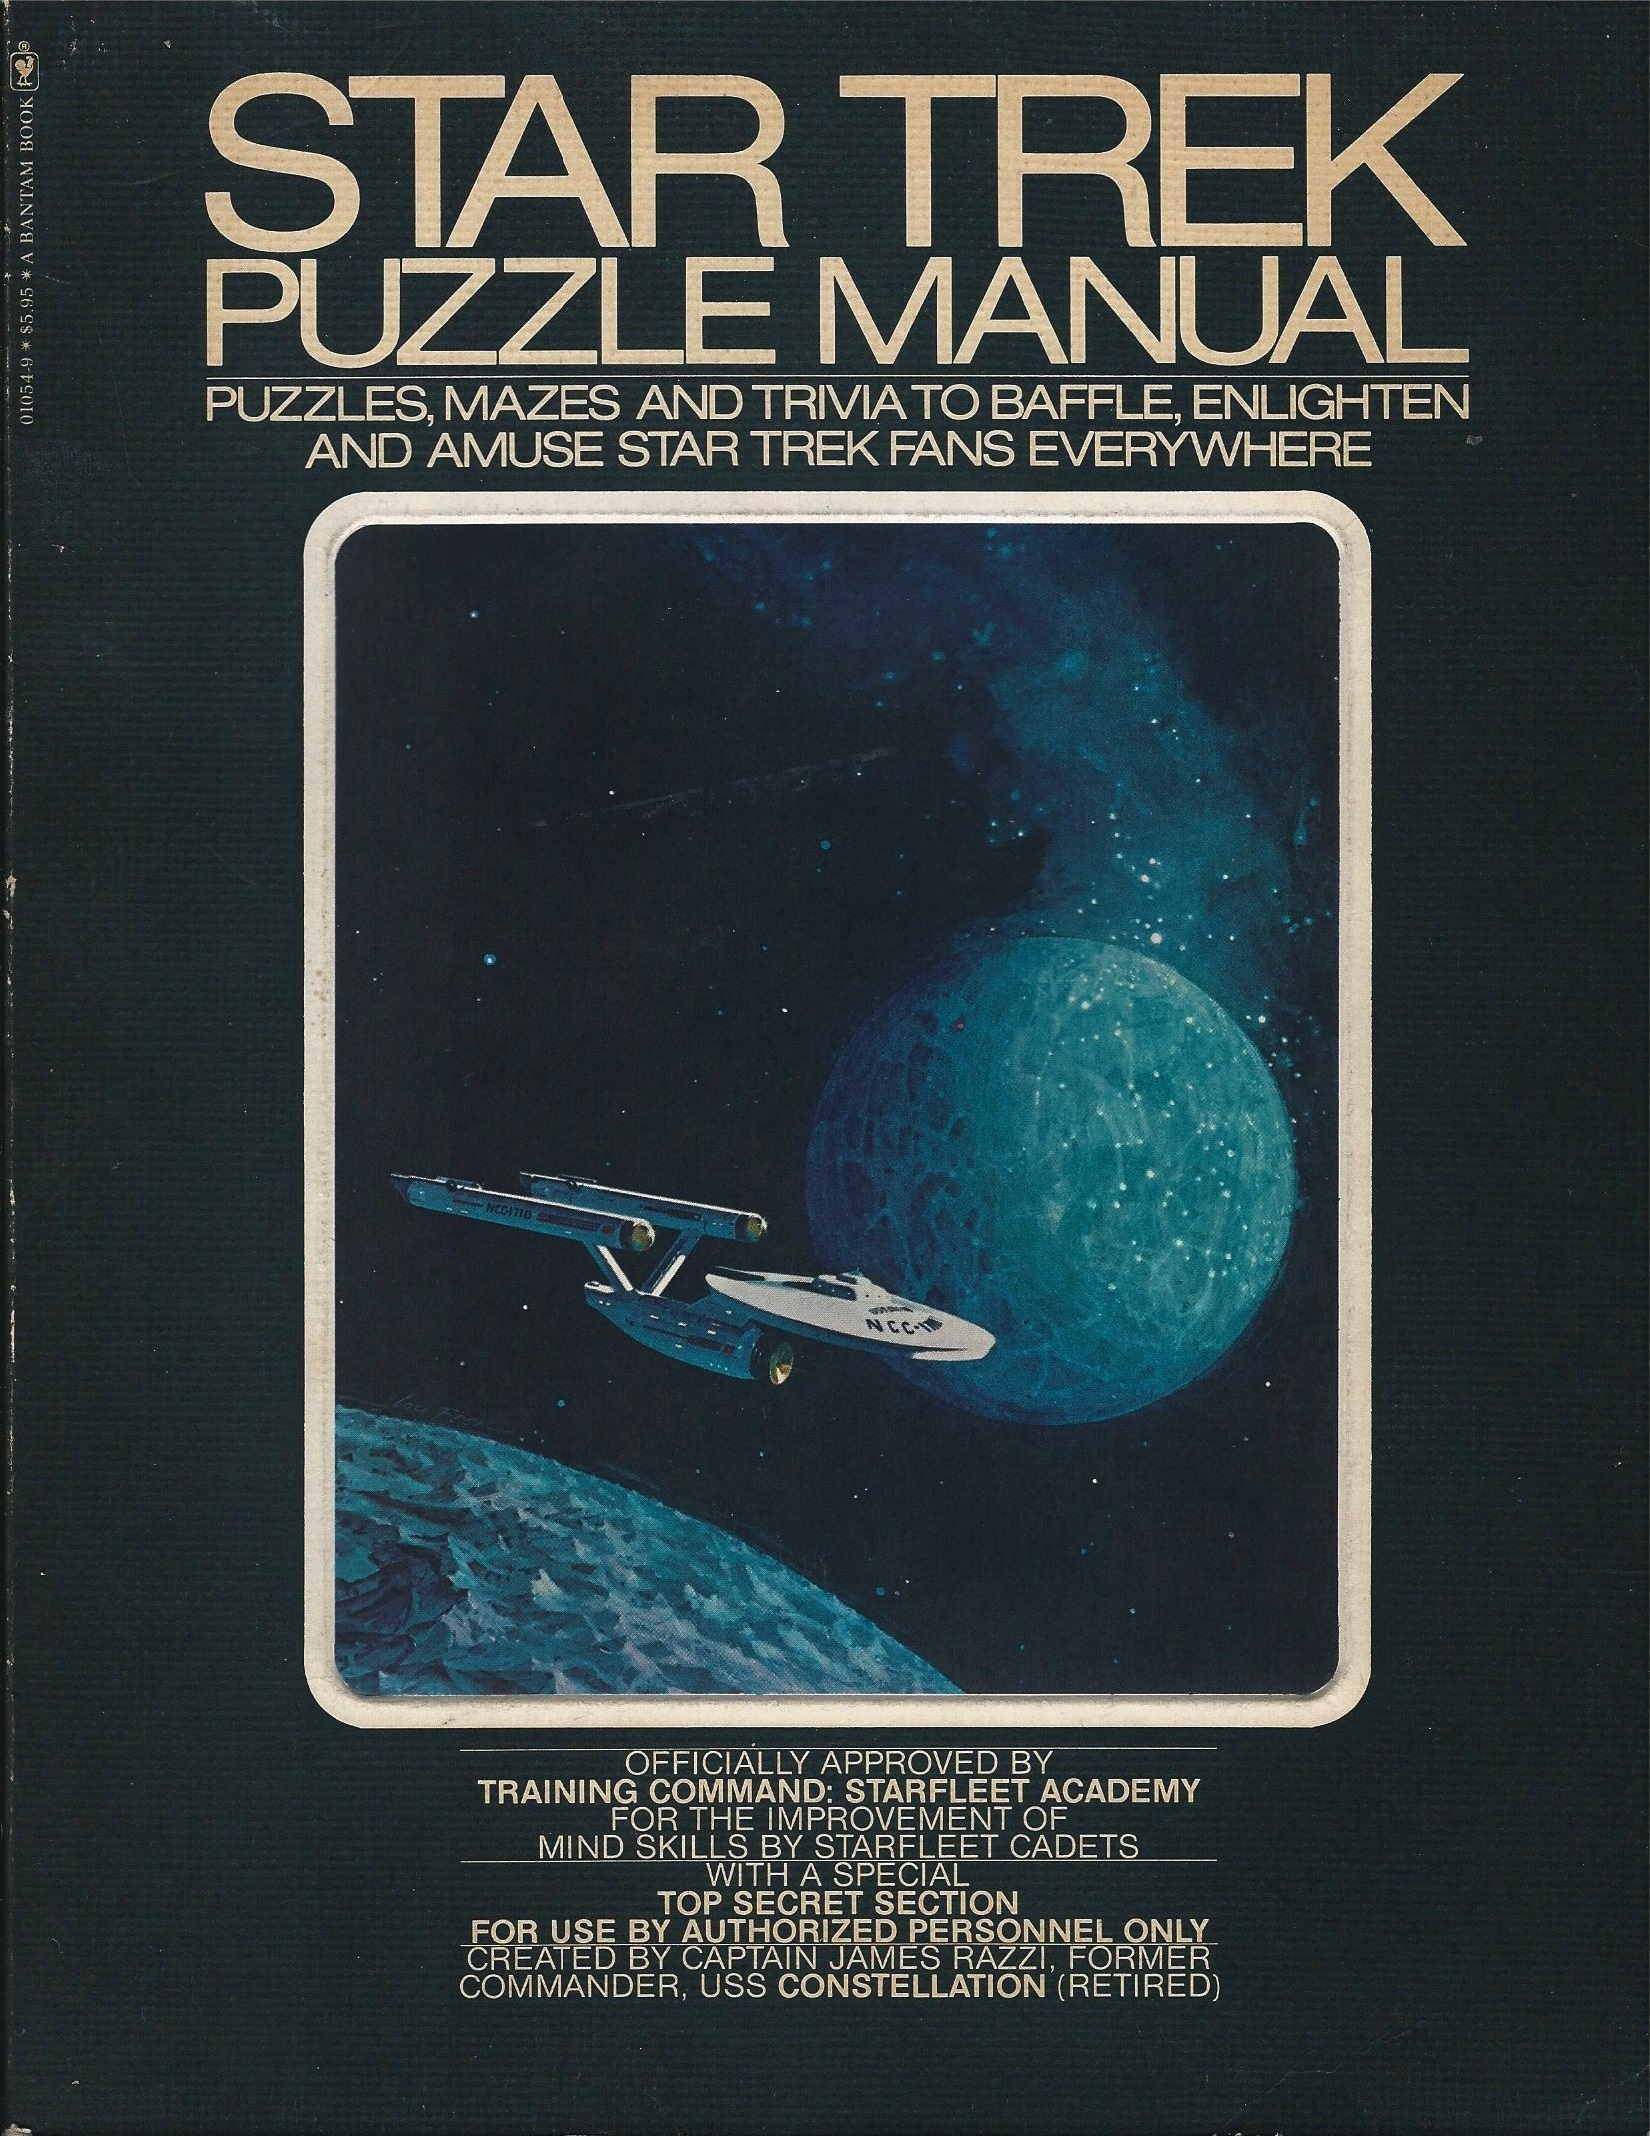 Star Trek Puzzle Manual 1976.jpg